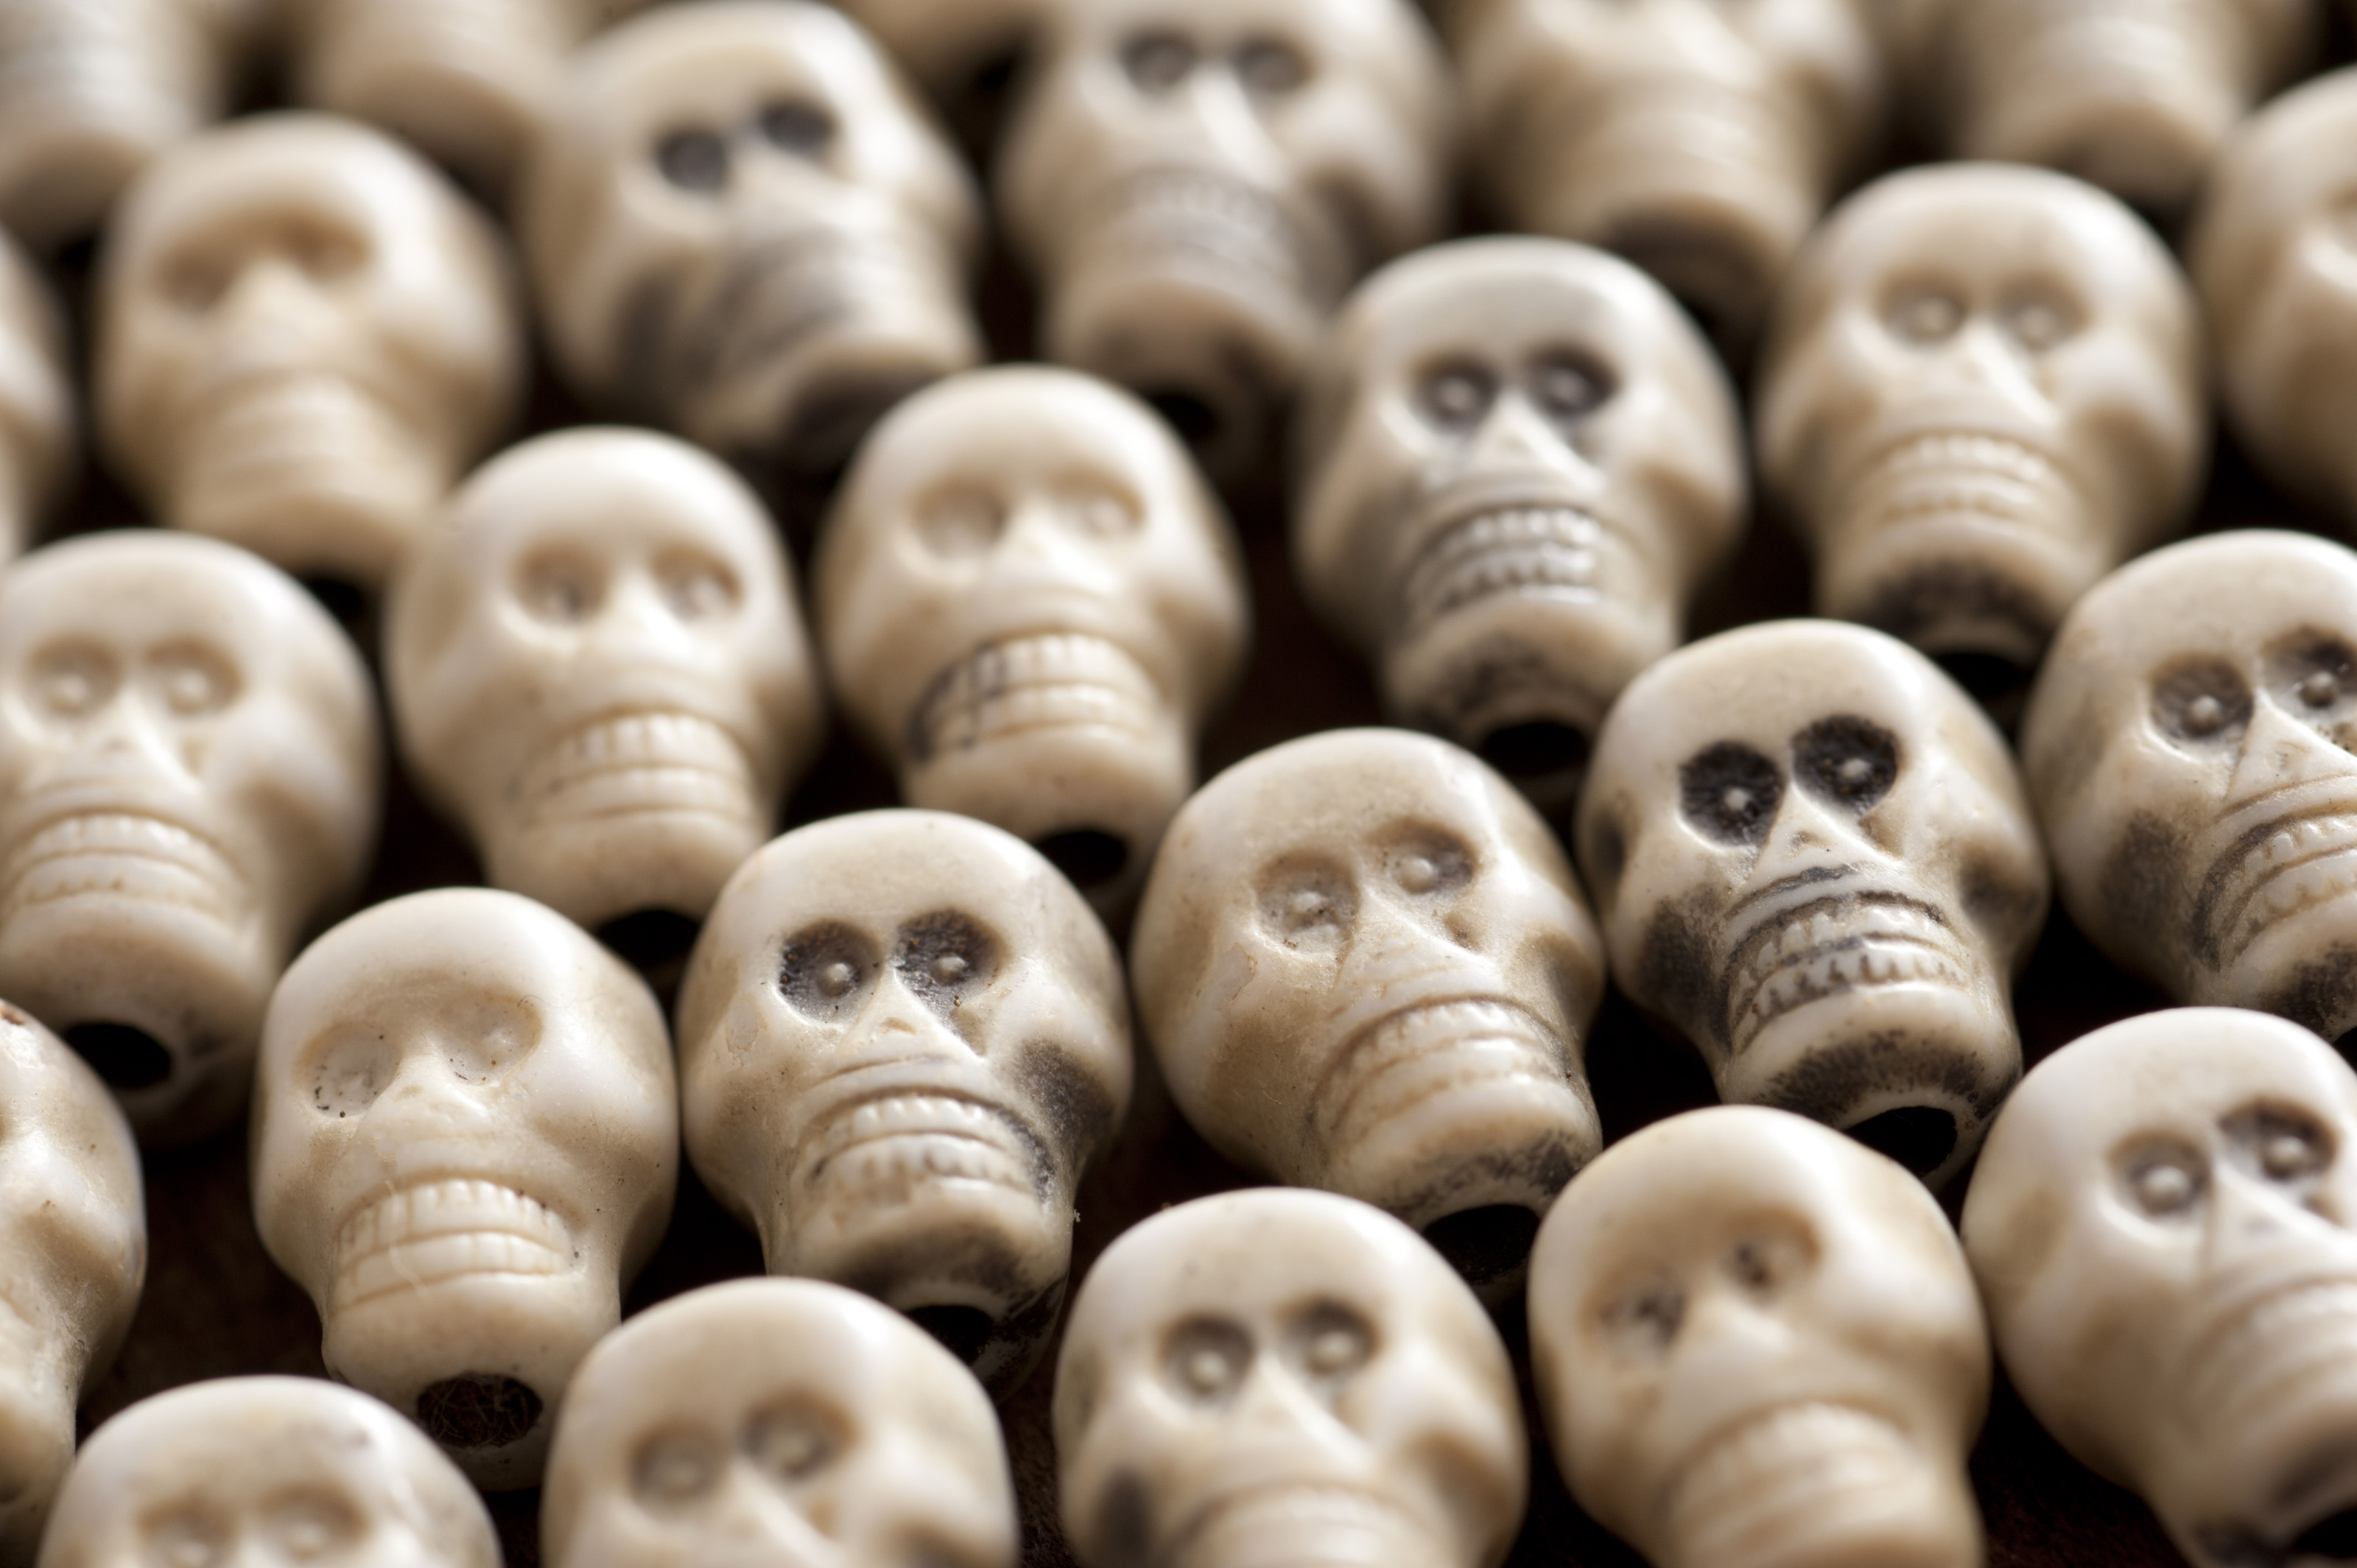 Hallowee  background of multiple white toy plastic skulls packed closely together viewed low angle with shallow dof